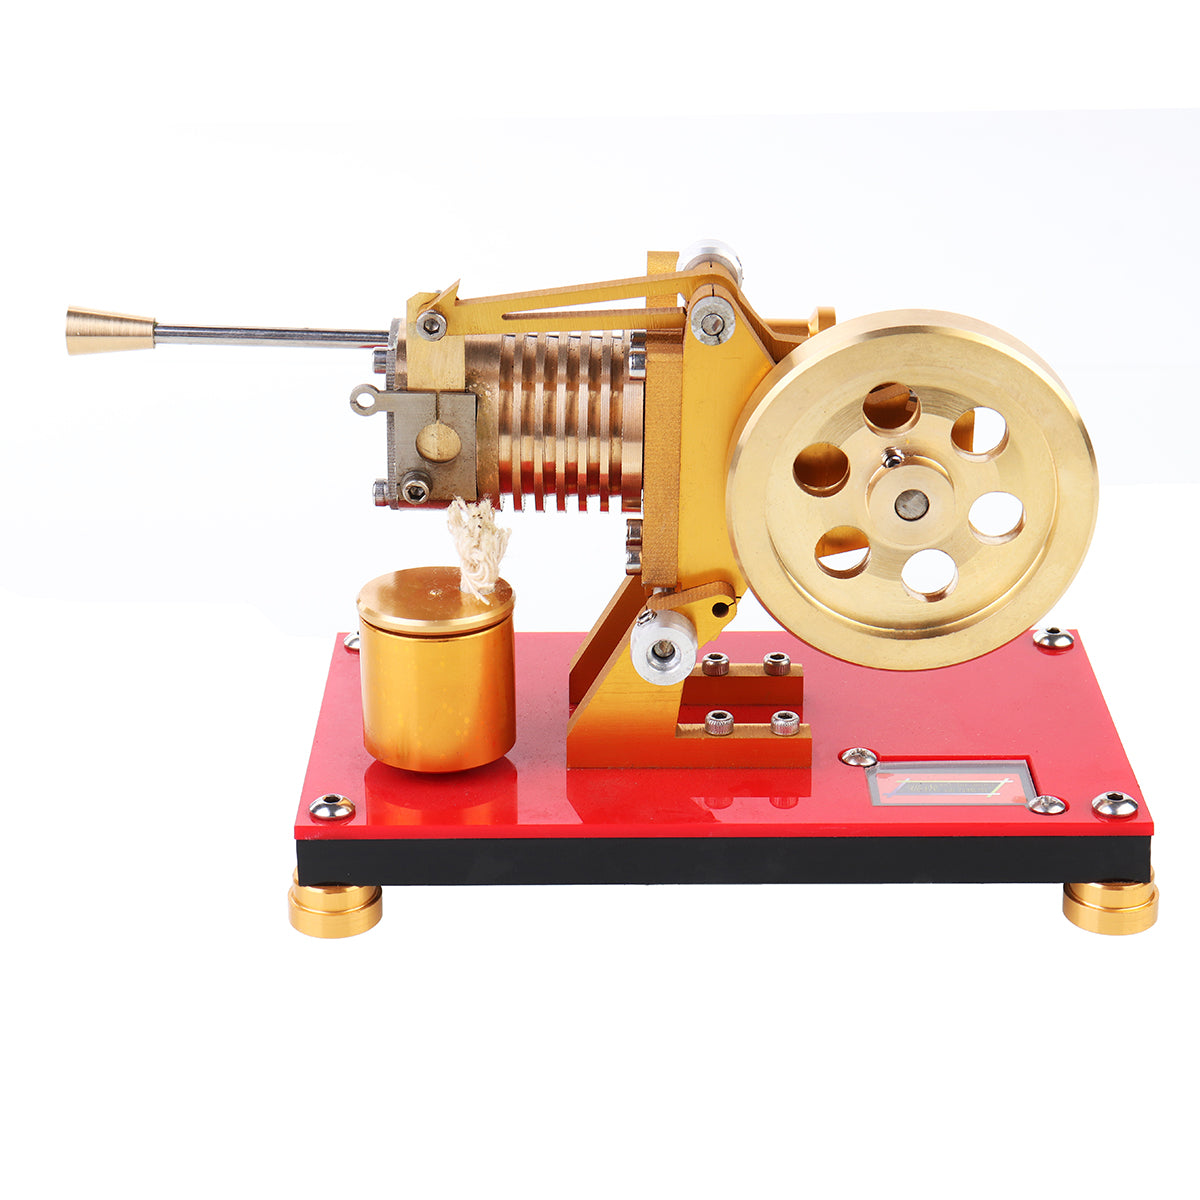 Flame Licker Flame Eater Flame Gulper Stirling Engine Motor